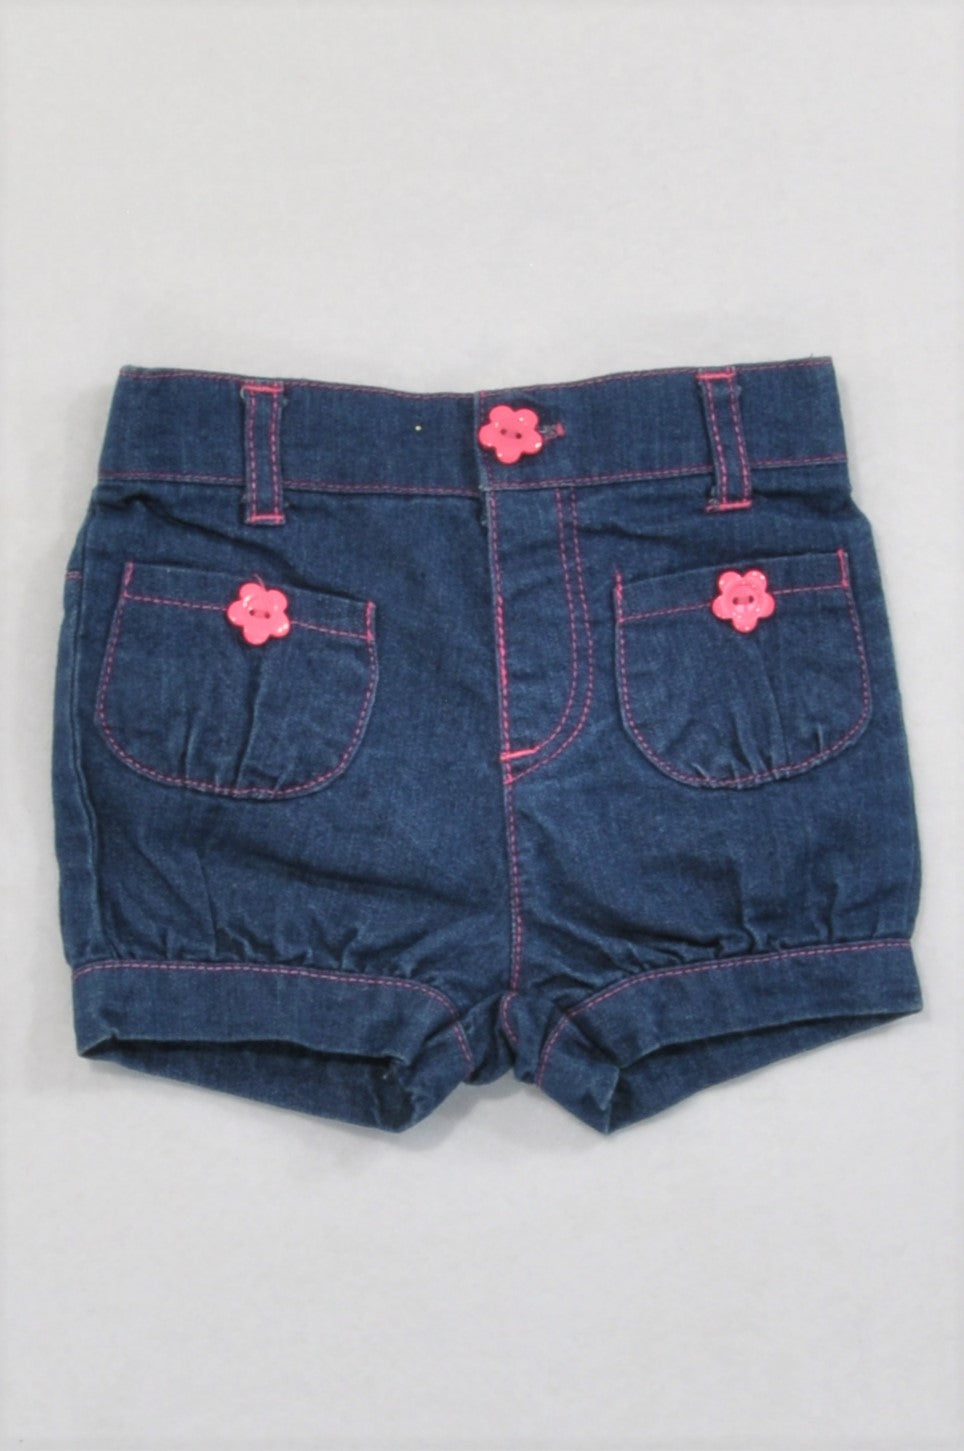 Ackermans Denim Pink Button Shorts Girls 0-3 months